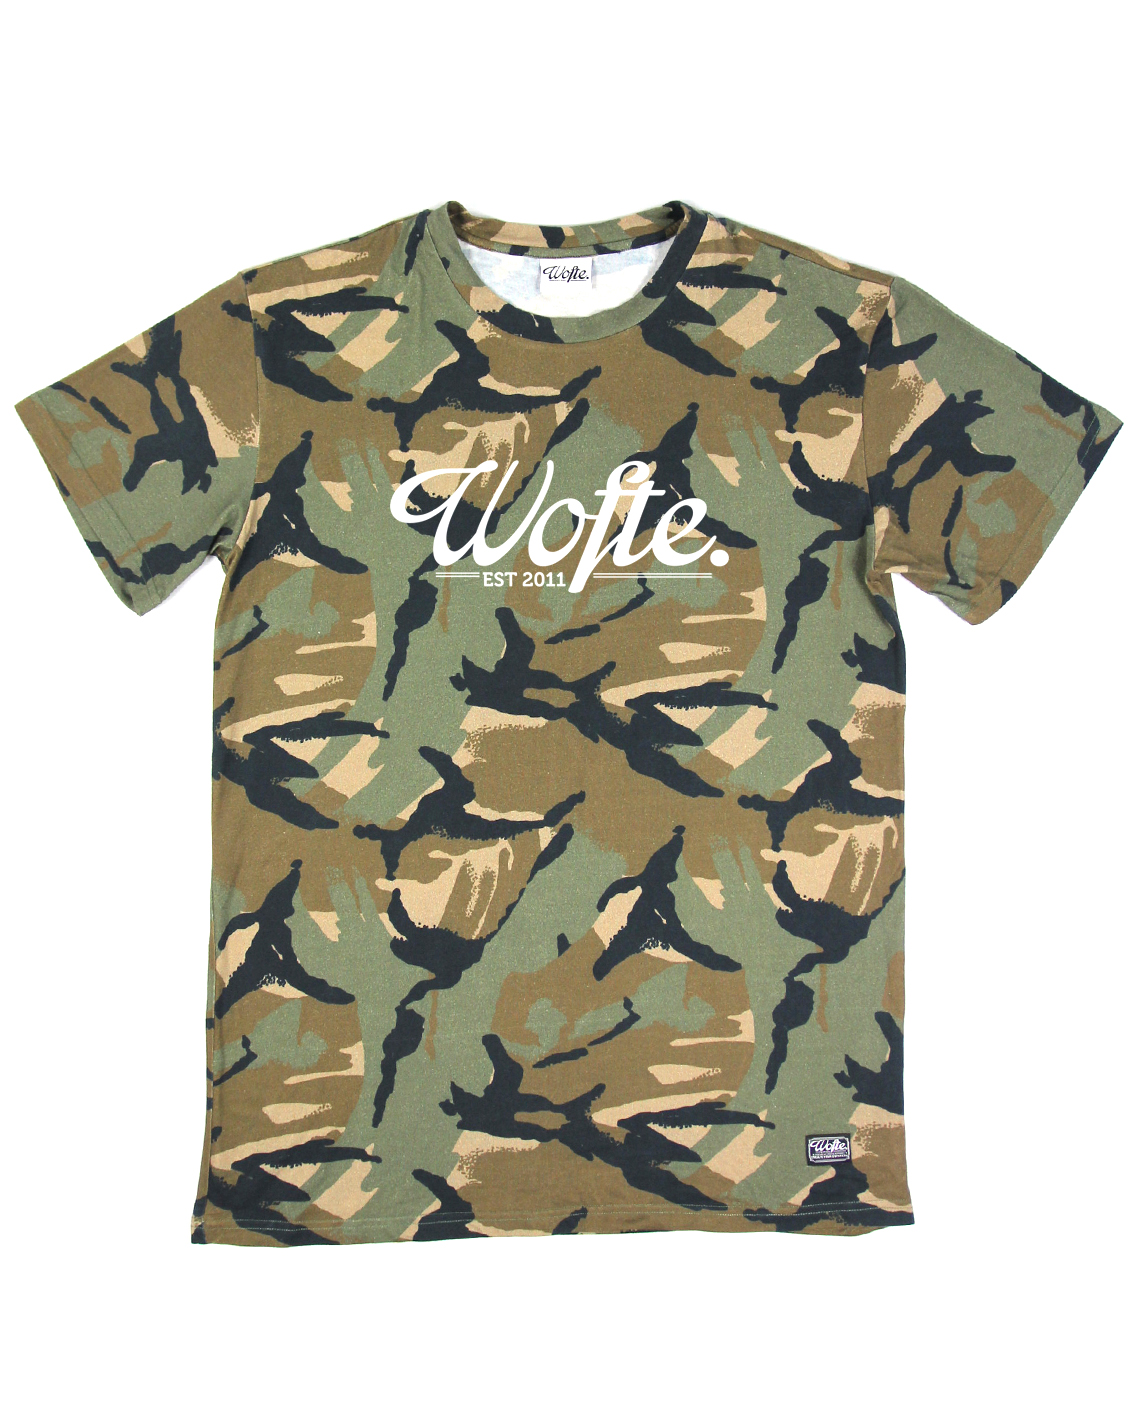 Wofte Clothing Camo Est.11 Tee Shirt